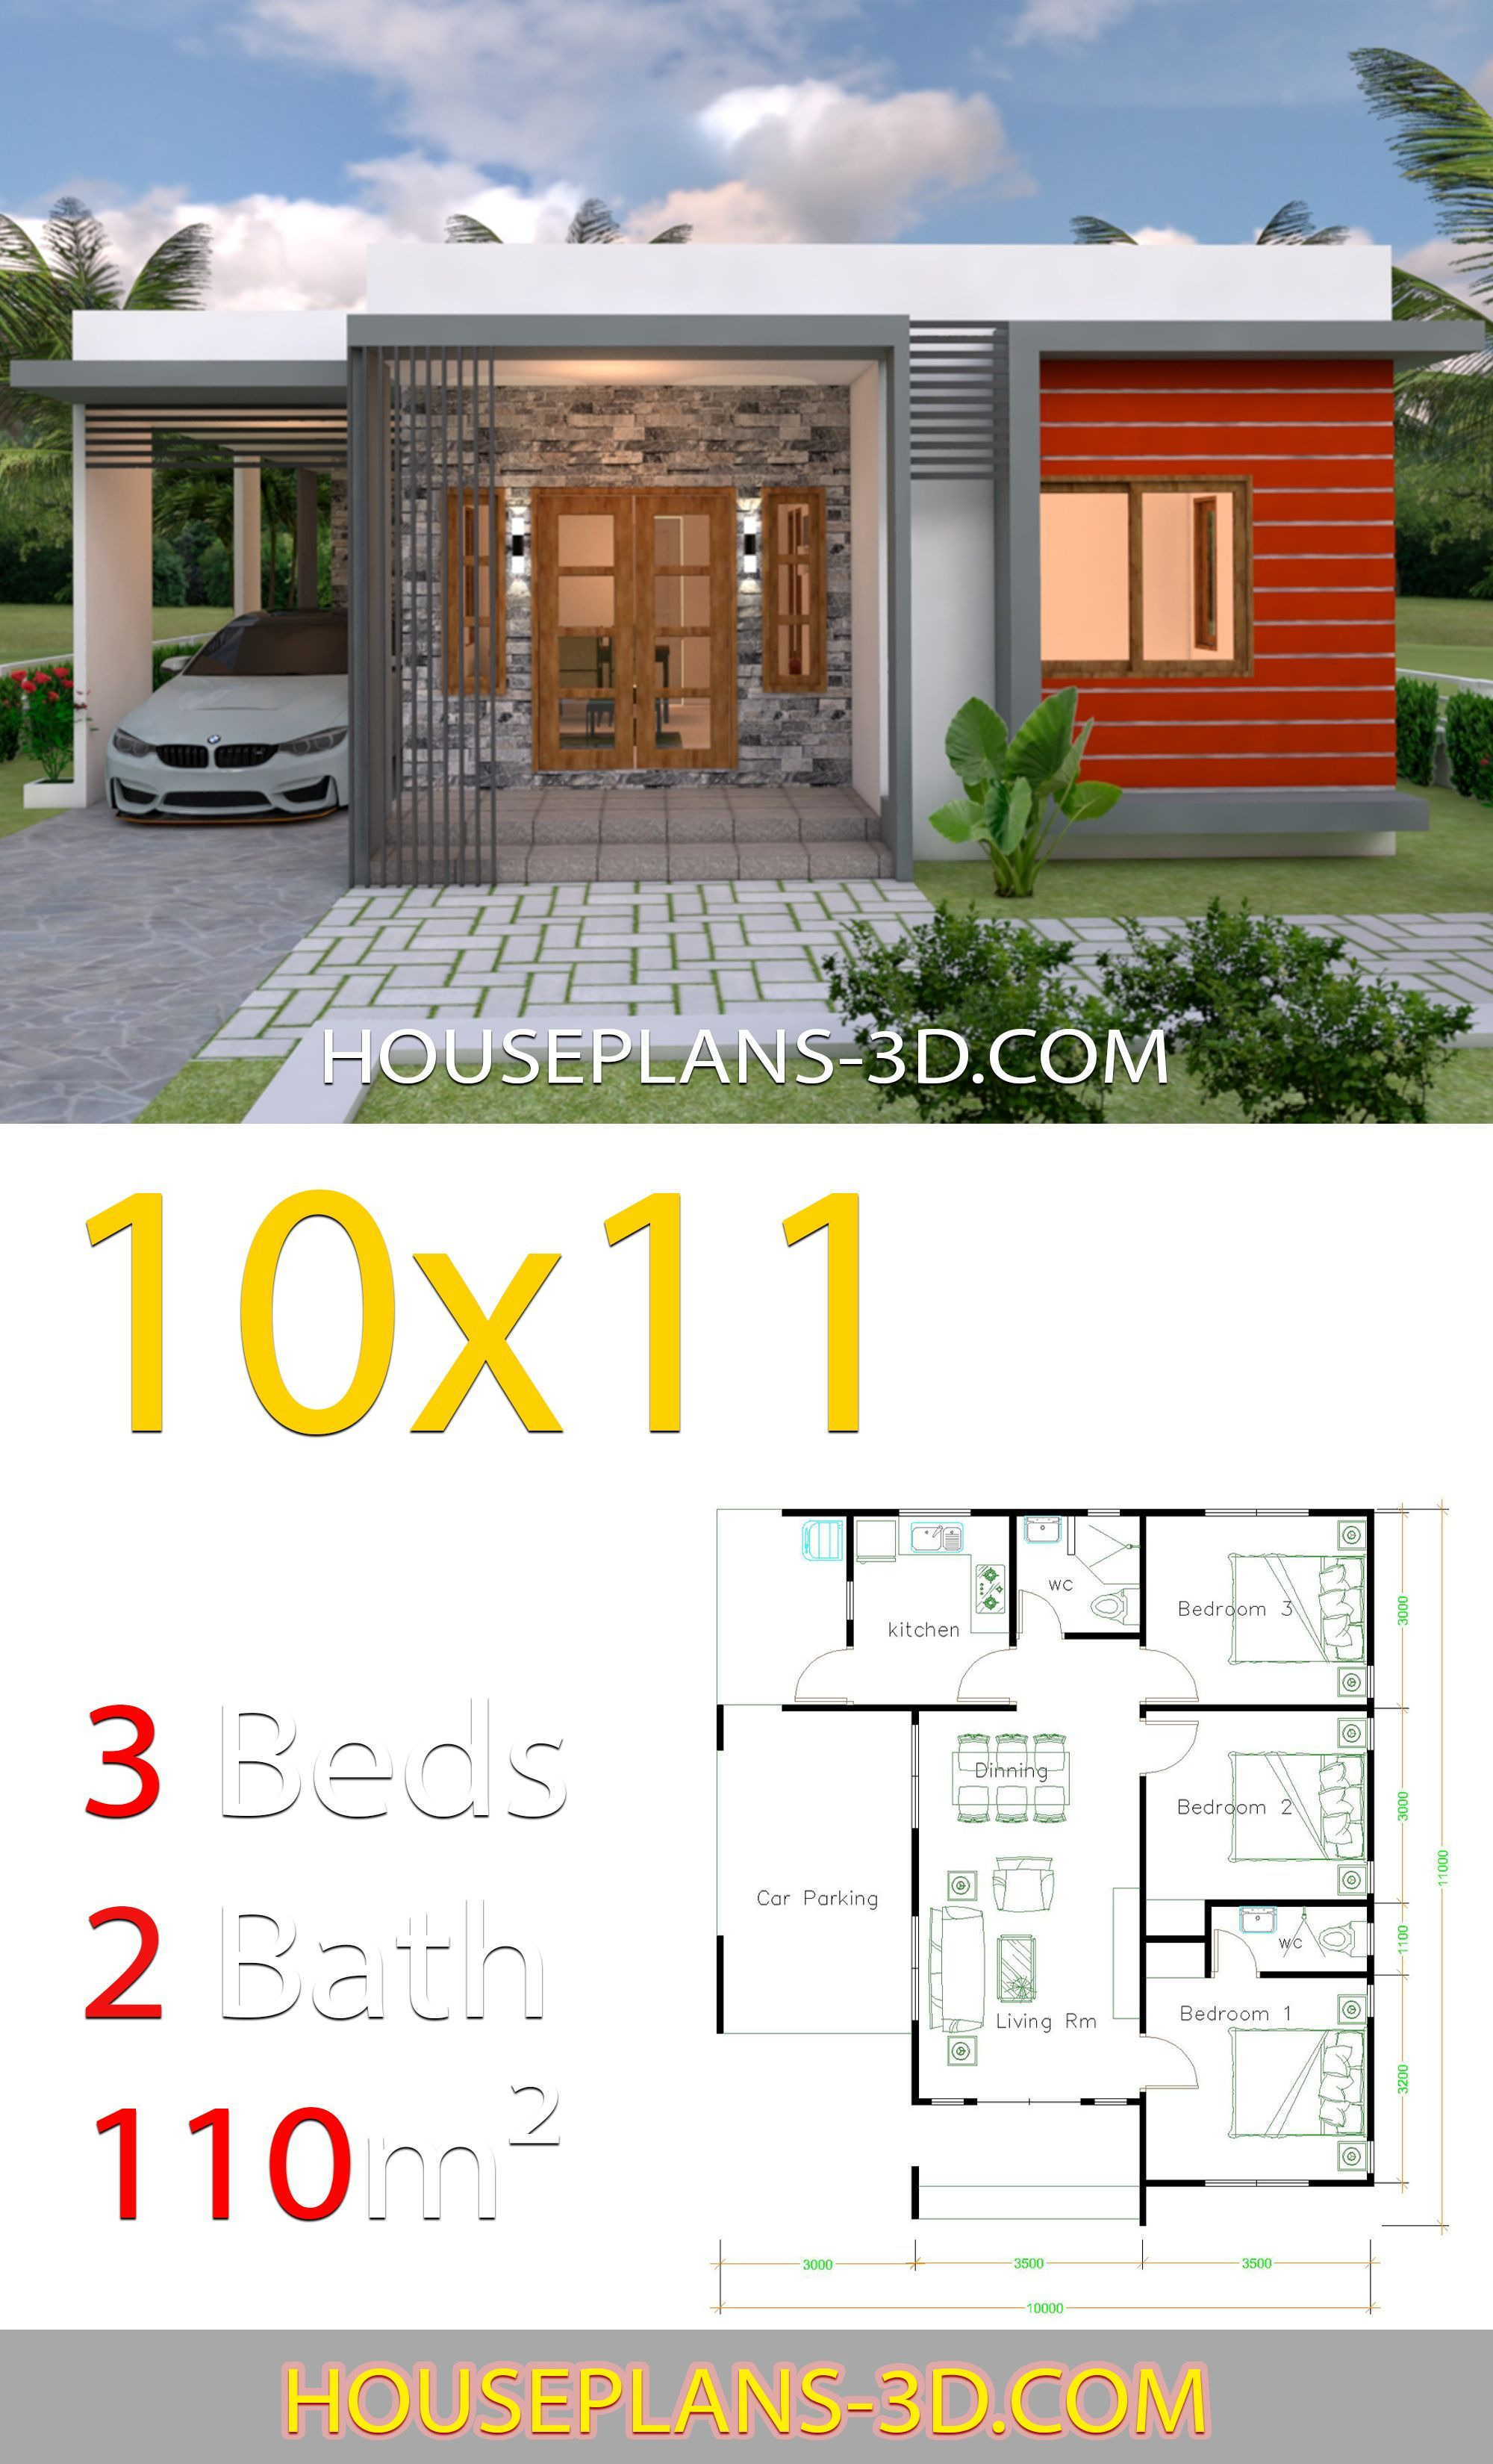 Self Design House Plans Best Of Small House Design Plans House Design 10—11 with 3